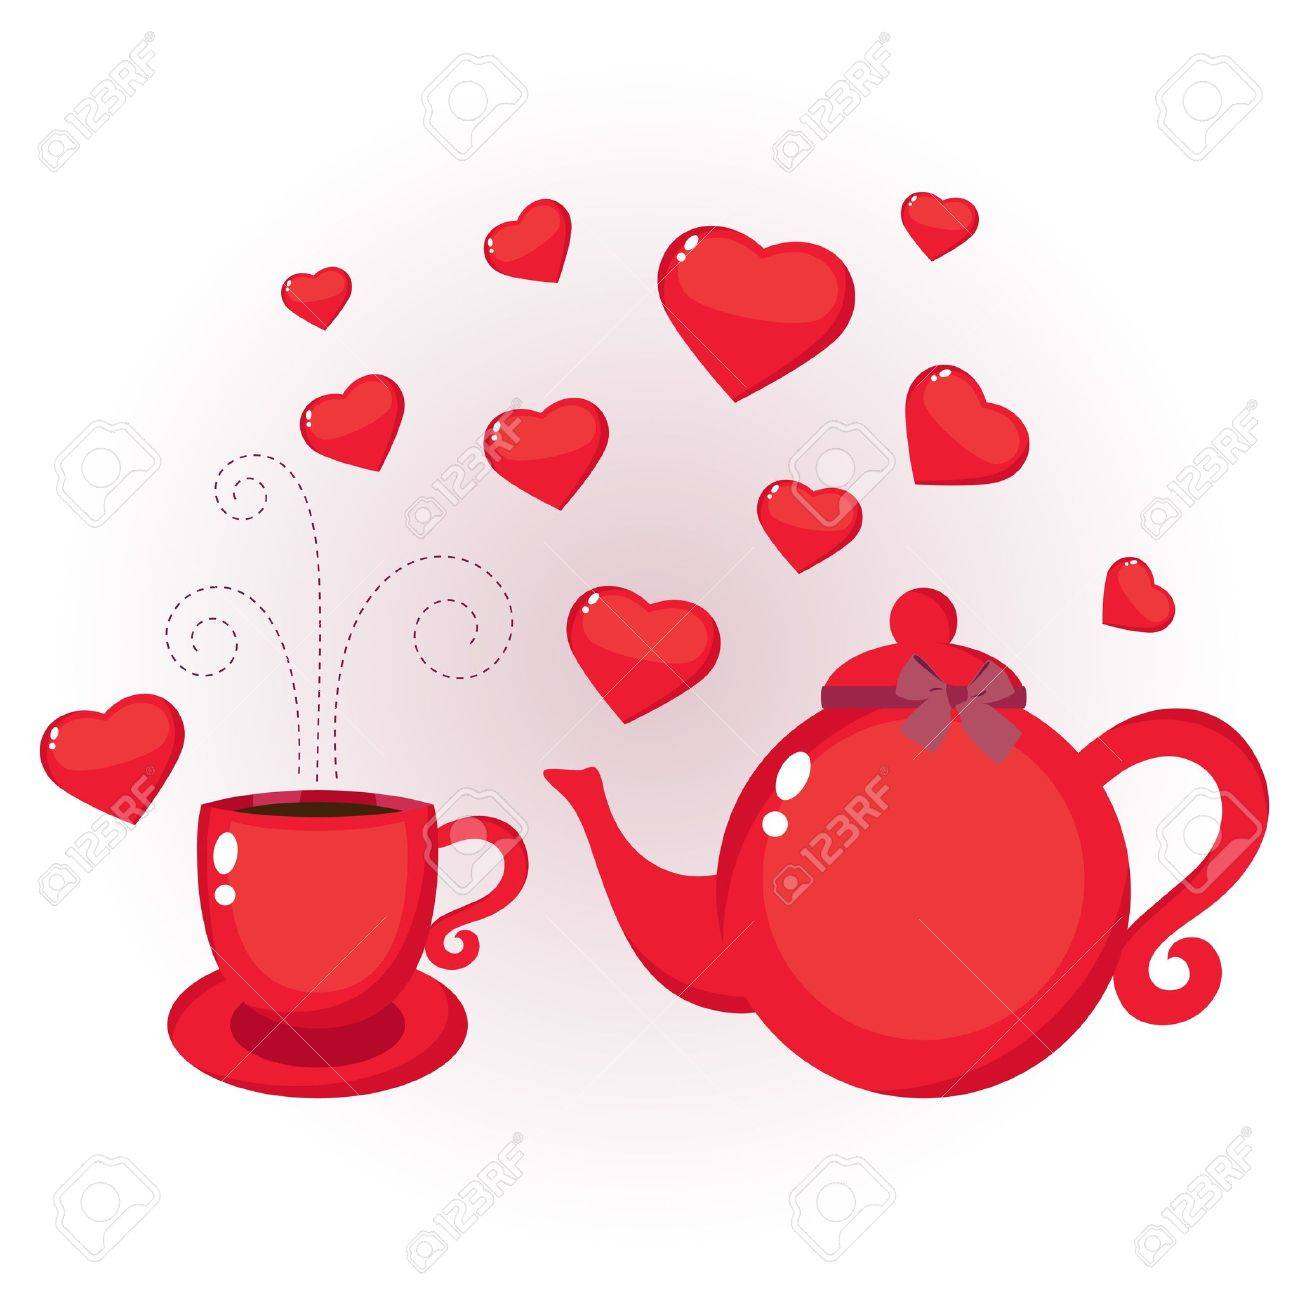 Red Teapot And Cup With Hearts Royalty Free Cliparts Vectors And Stock Illustration Image 11986022